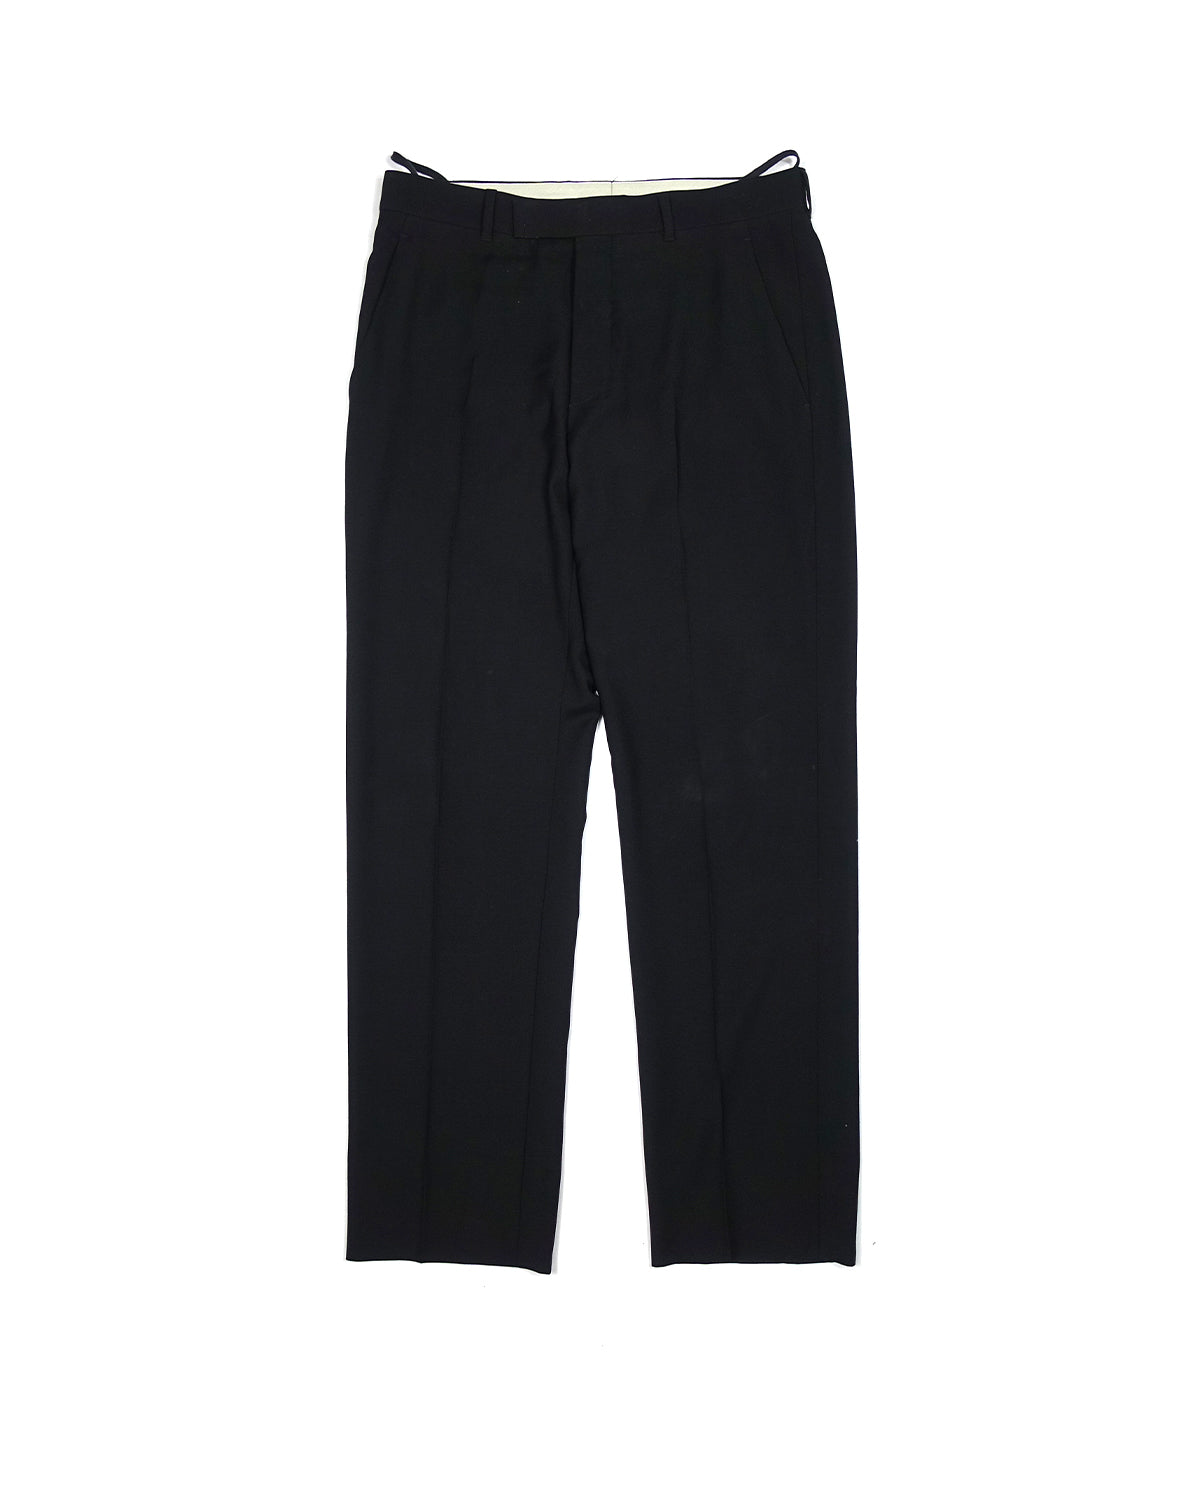 Helmut Lang Pleated Trouser AW2003